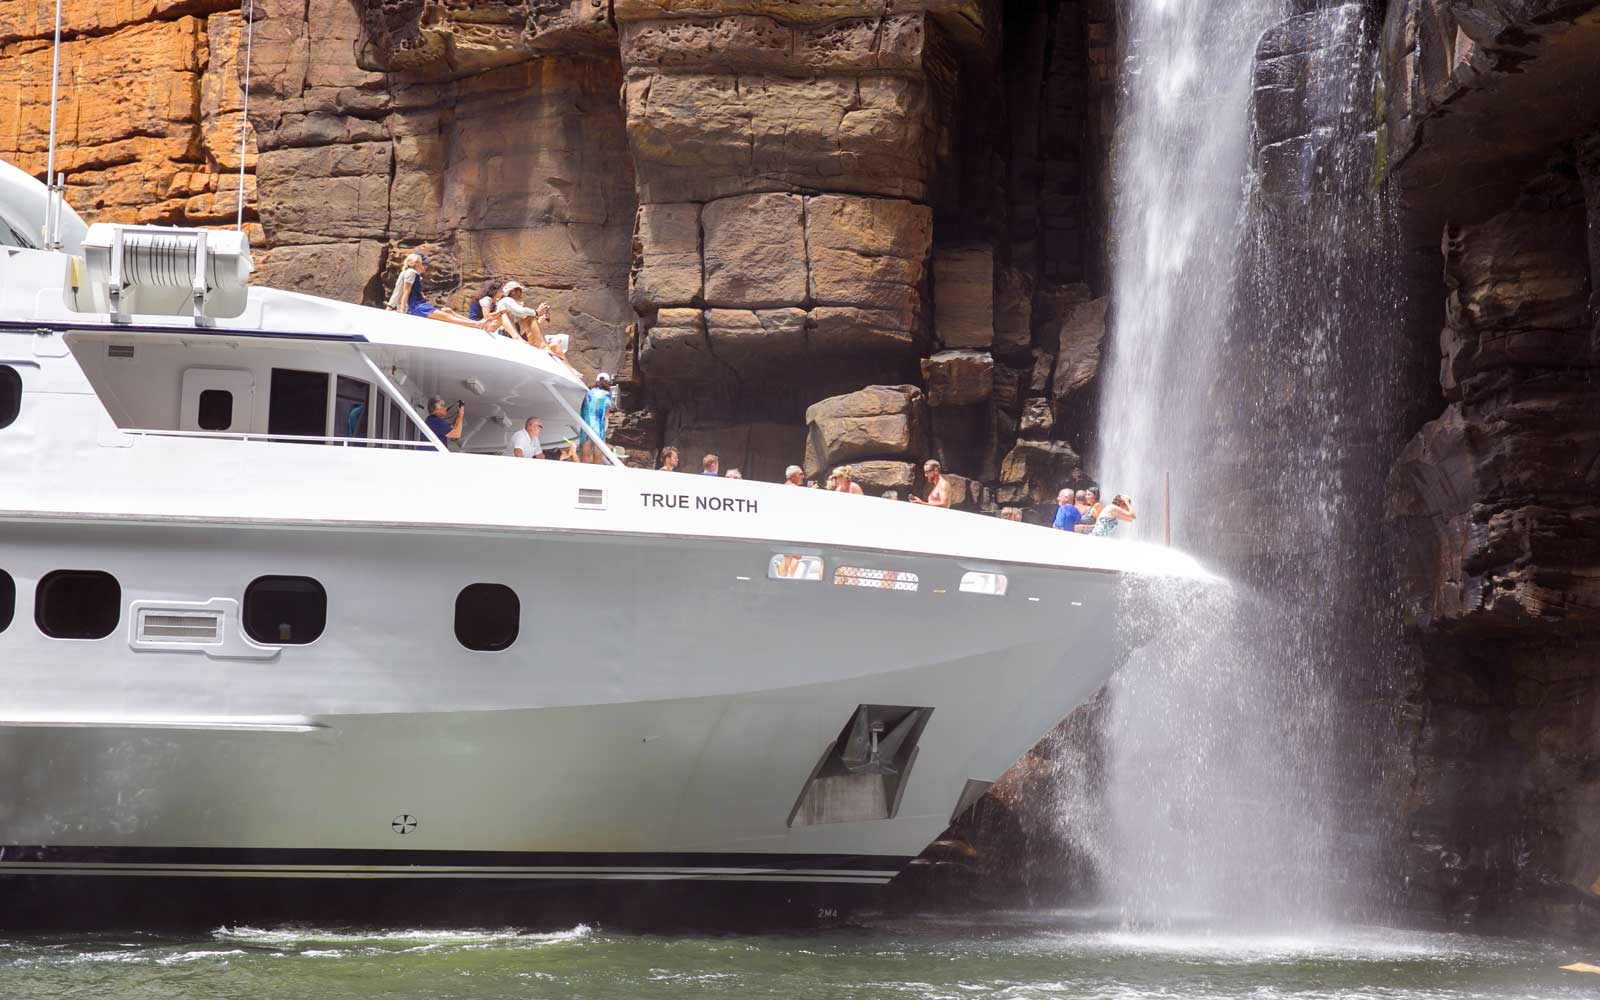 True North boat at waterfall in the Kimberley, Australia